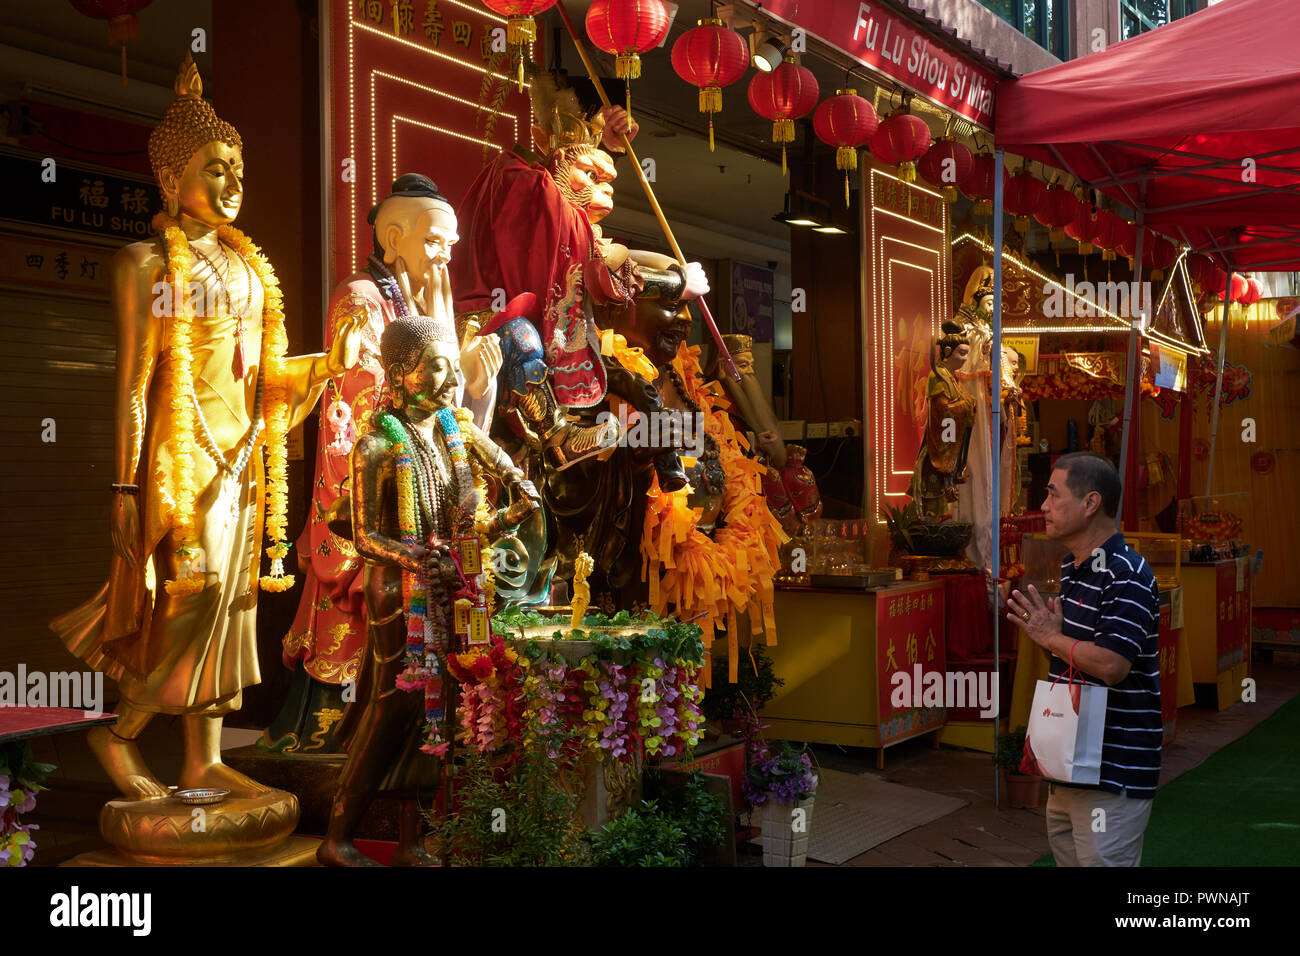 Taoist and Buddhist street shrines with multiple deities in Waterloo Street, Bugis area, Singapore, attracting a constant flow of worshippers - Stock Image